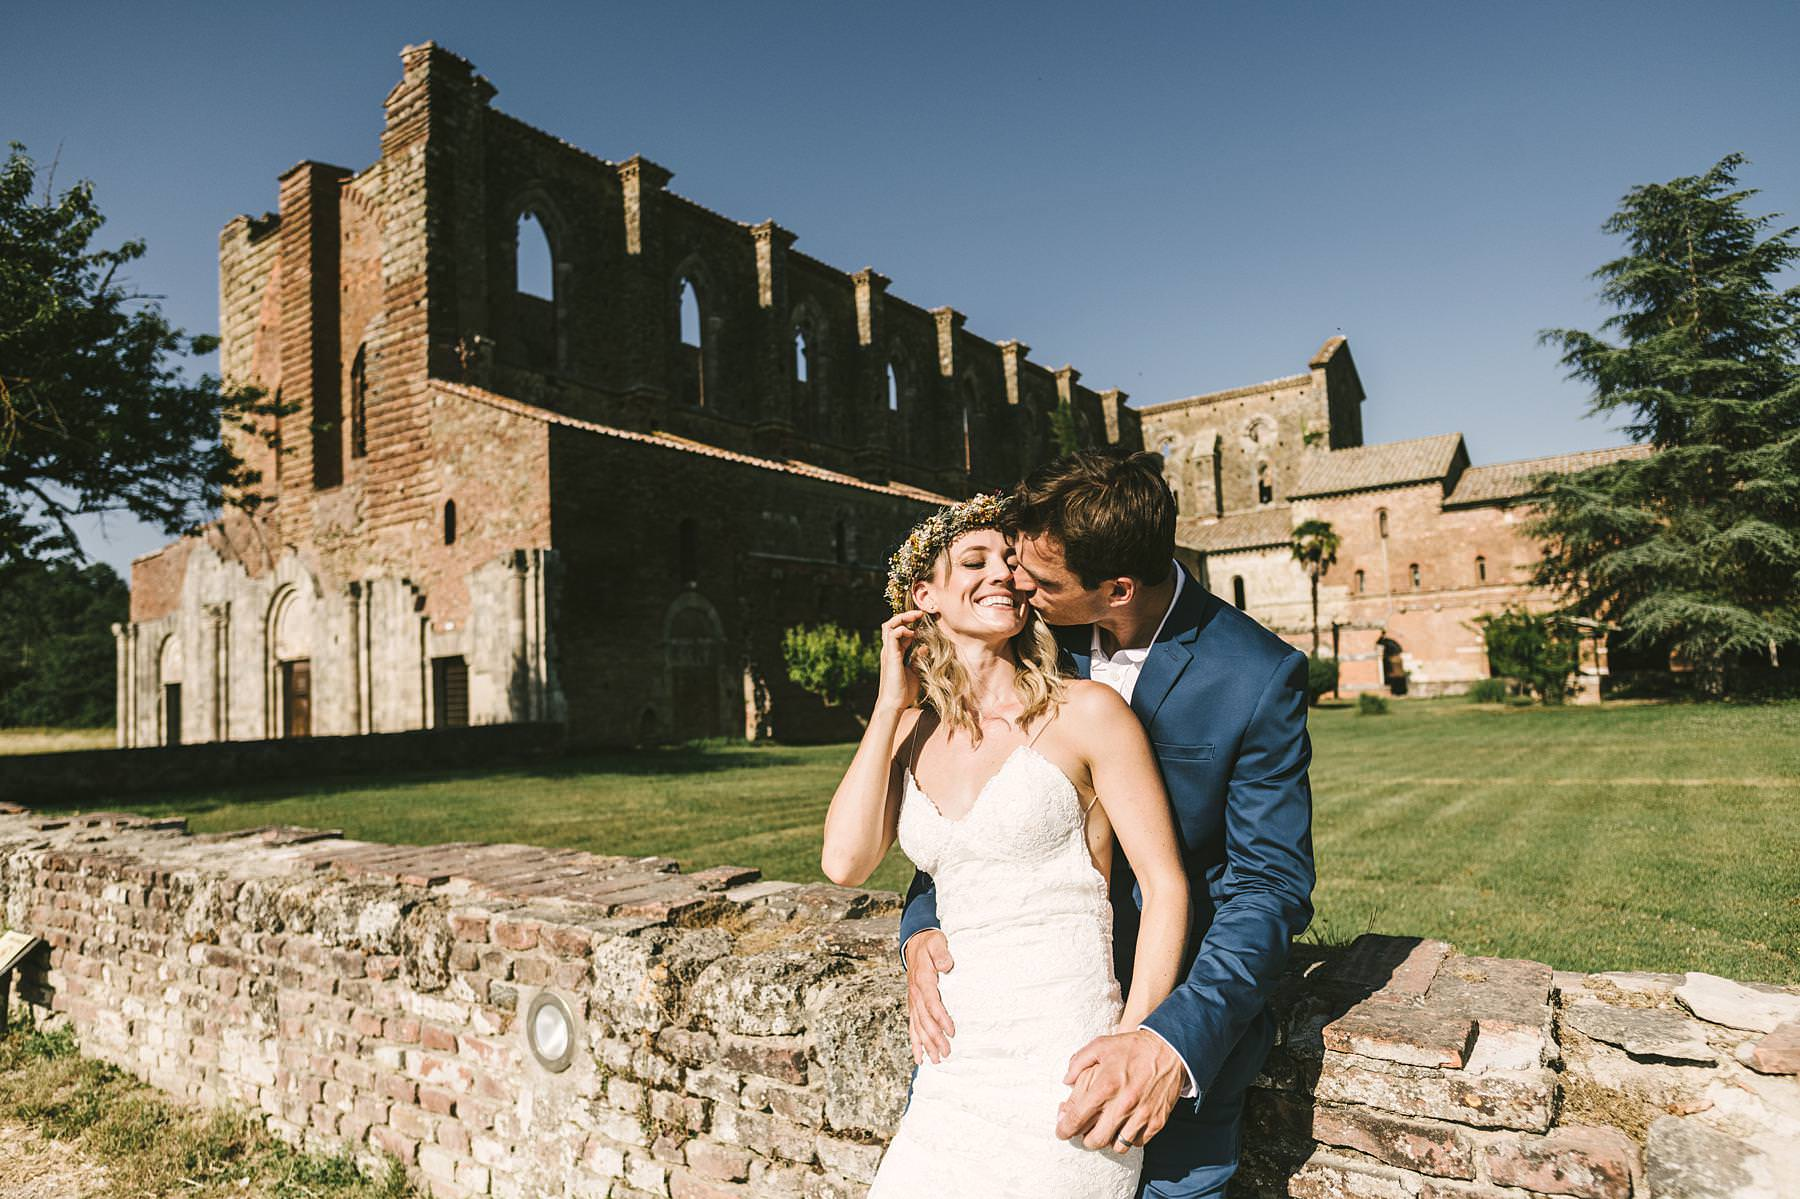 Lovely bride and groom wedding portrait at the Roofless Abbey of San Galgano full of colours, light, architecture and love gestures. Intimate destination Italian civil wedding in Tuscany